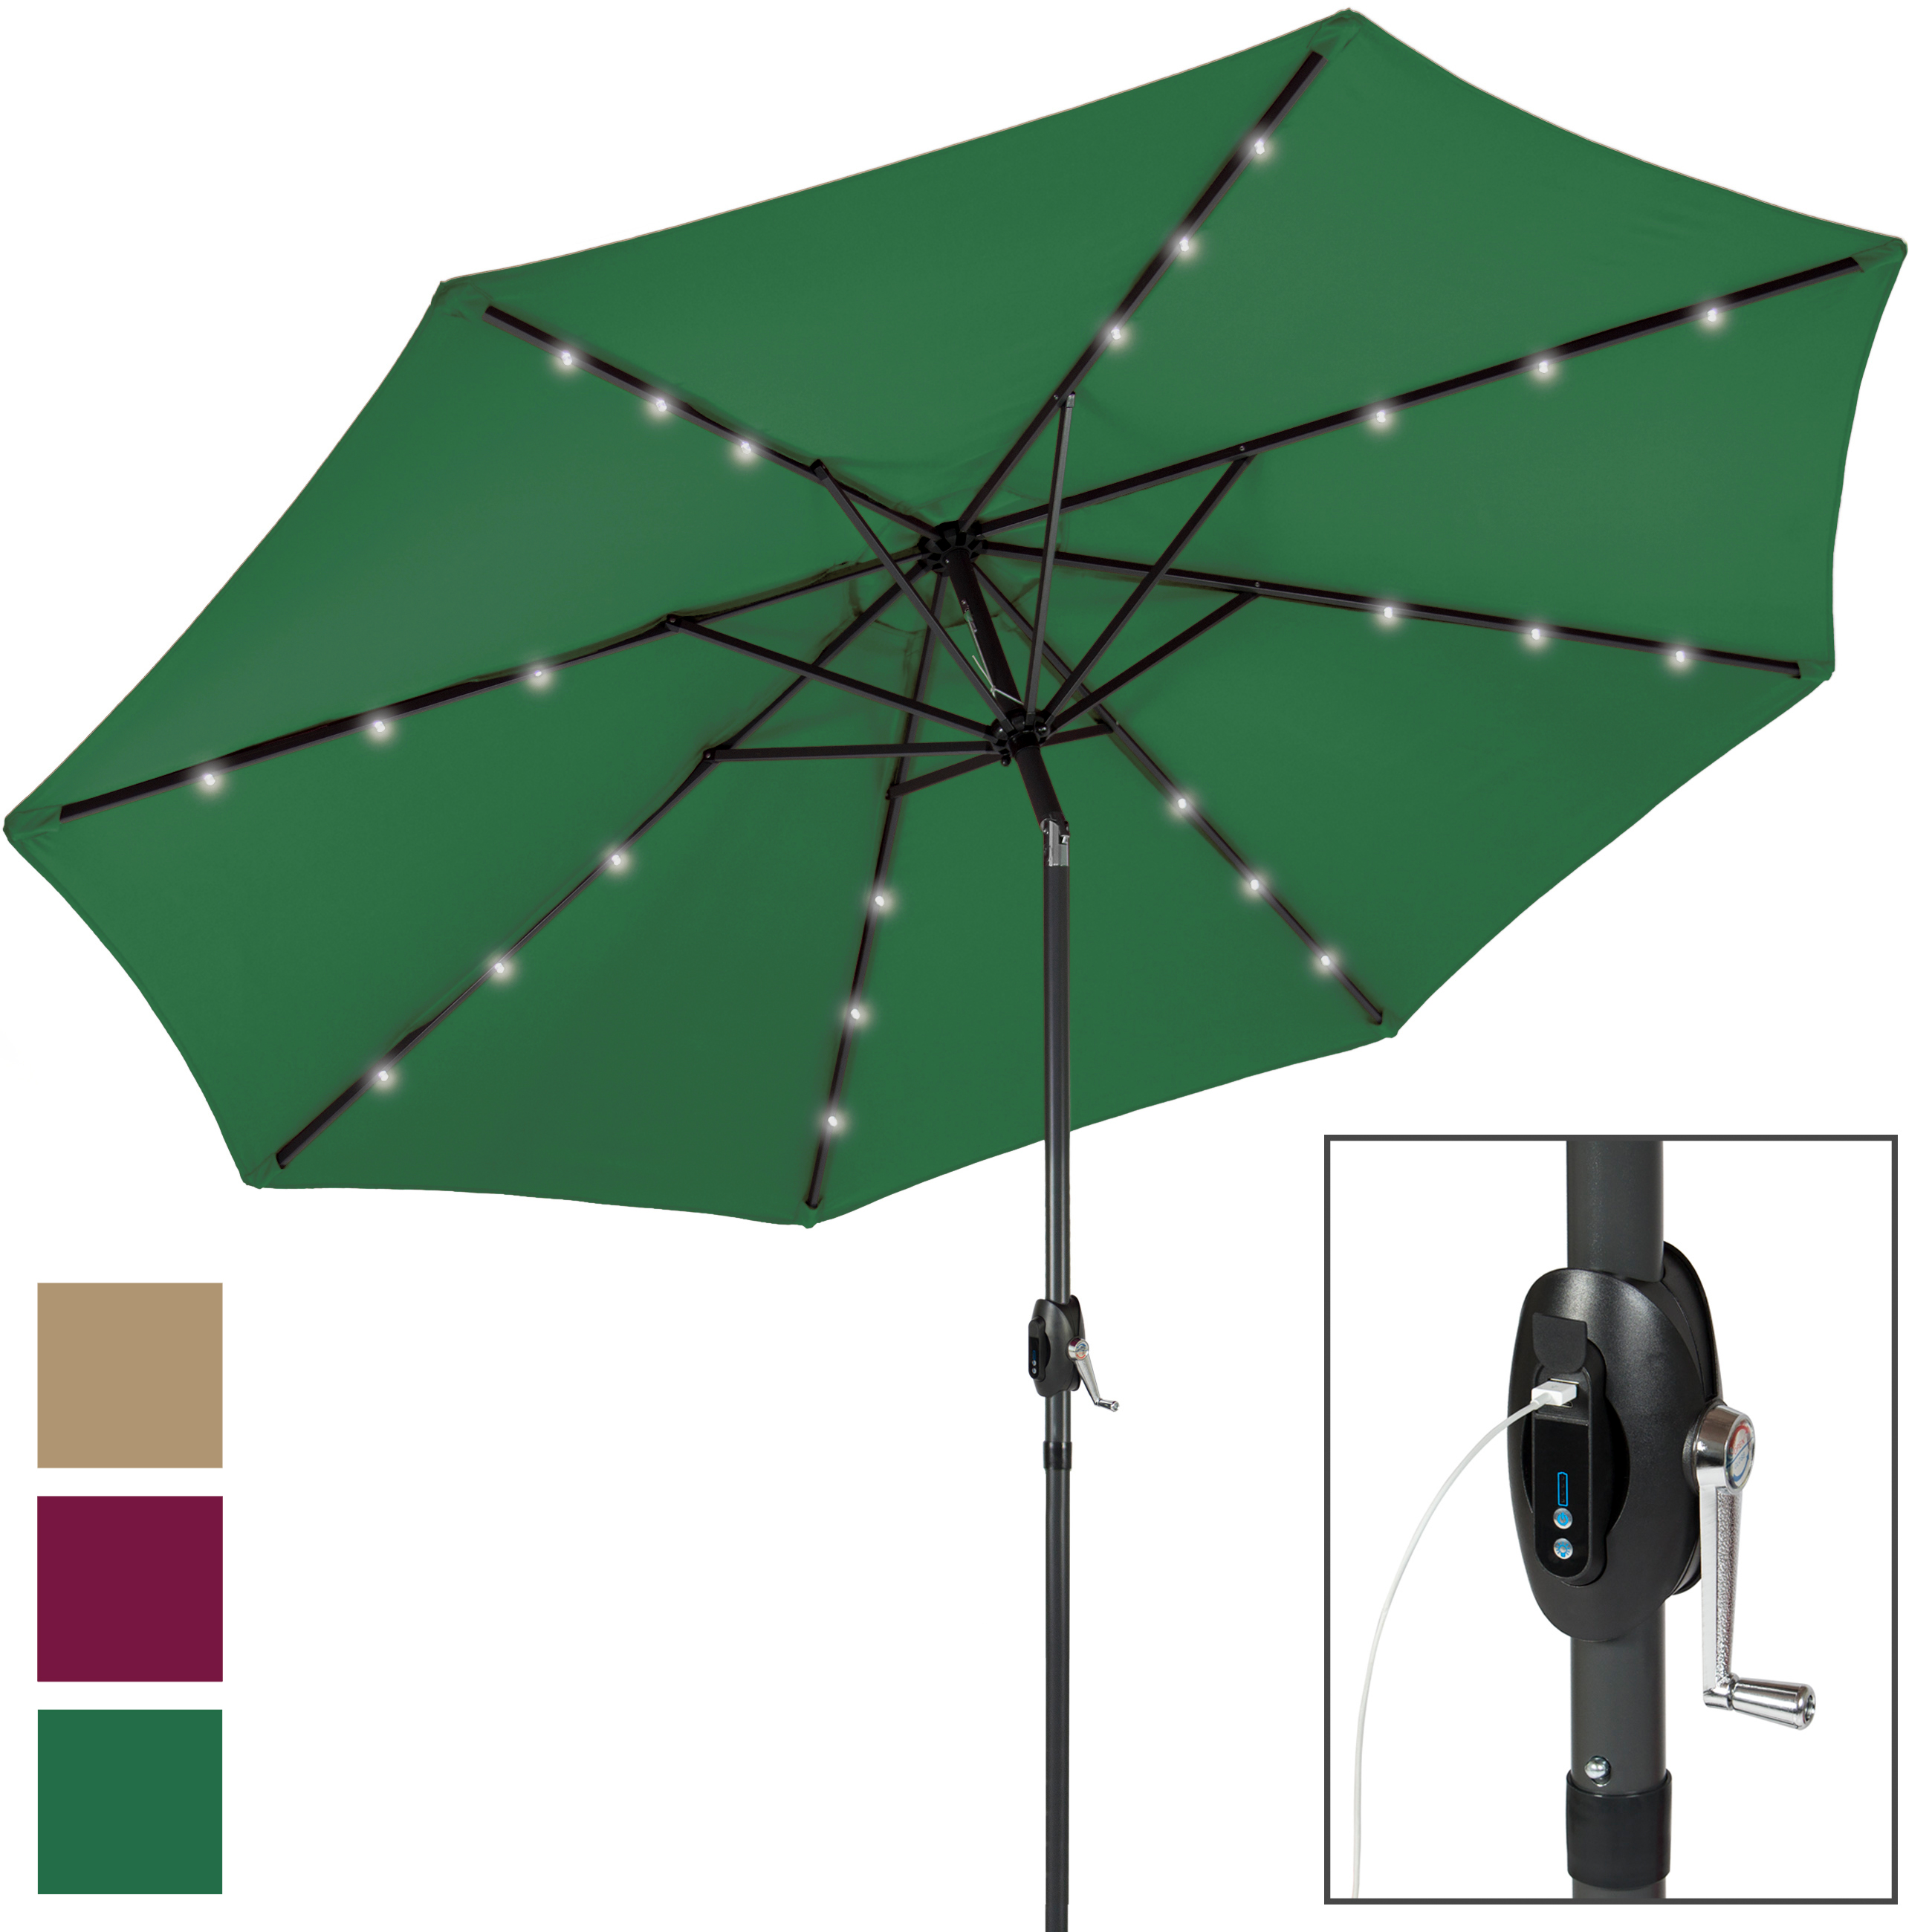 Portable USB Charger Bank 10' LED Light Patio Solar Umbrella Tilt Adjustment